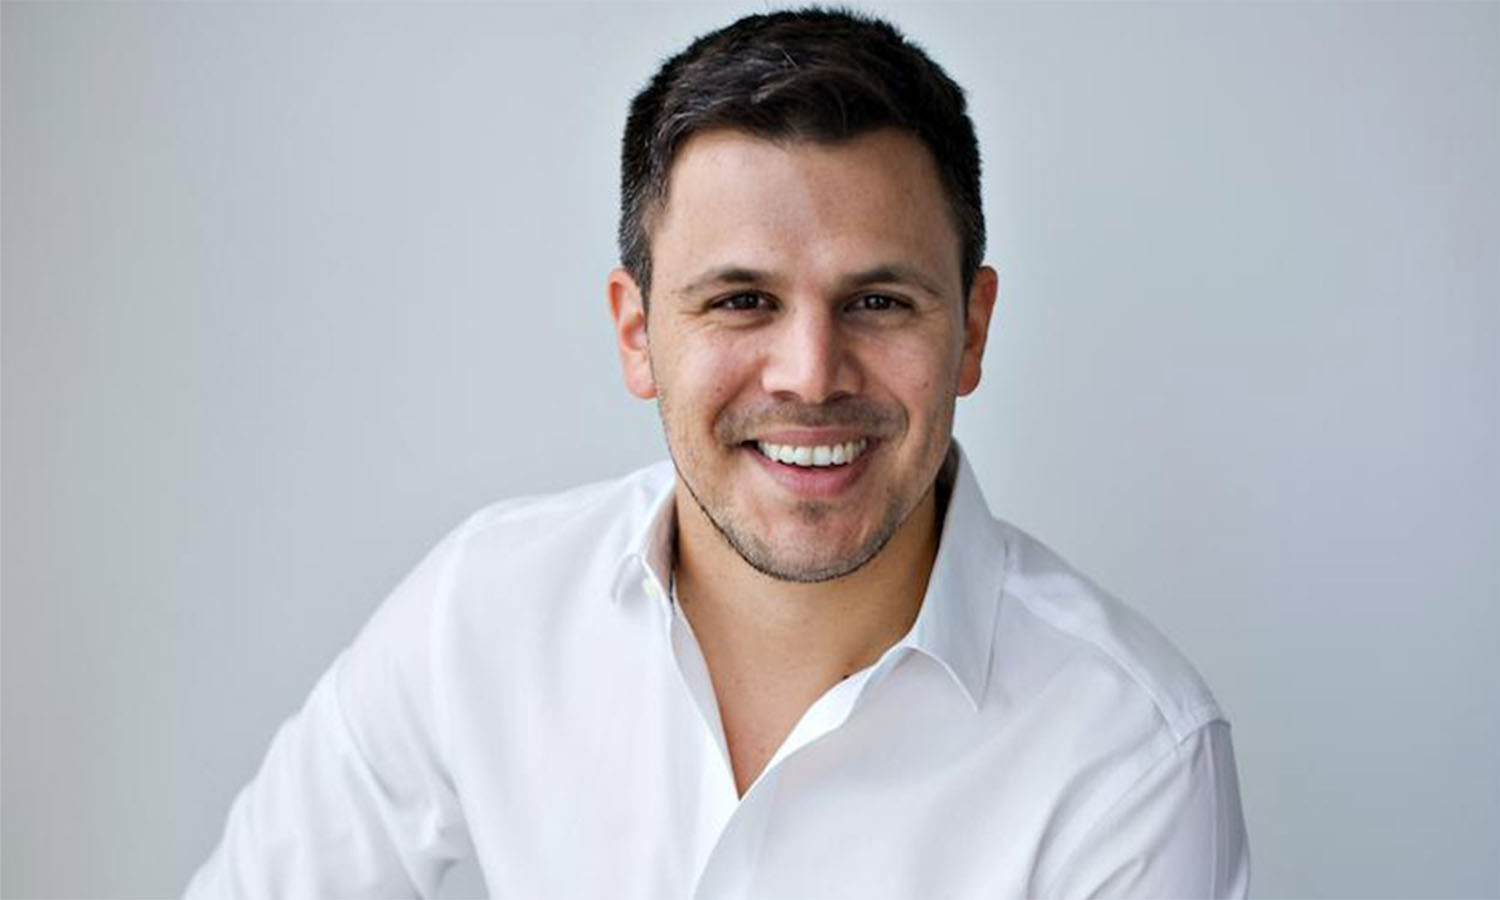 Juan Carlos Abello, Founder and CEO of Nuvola